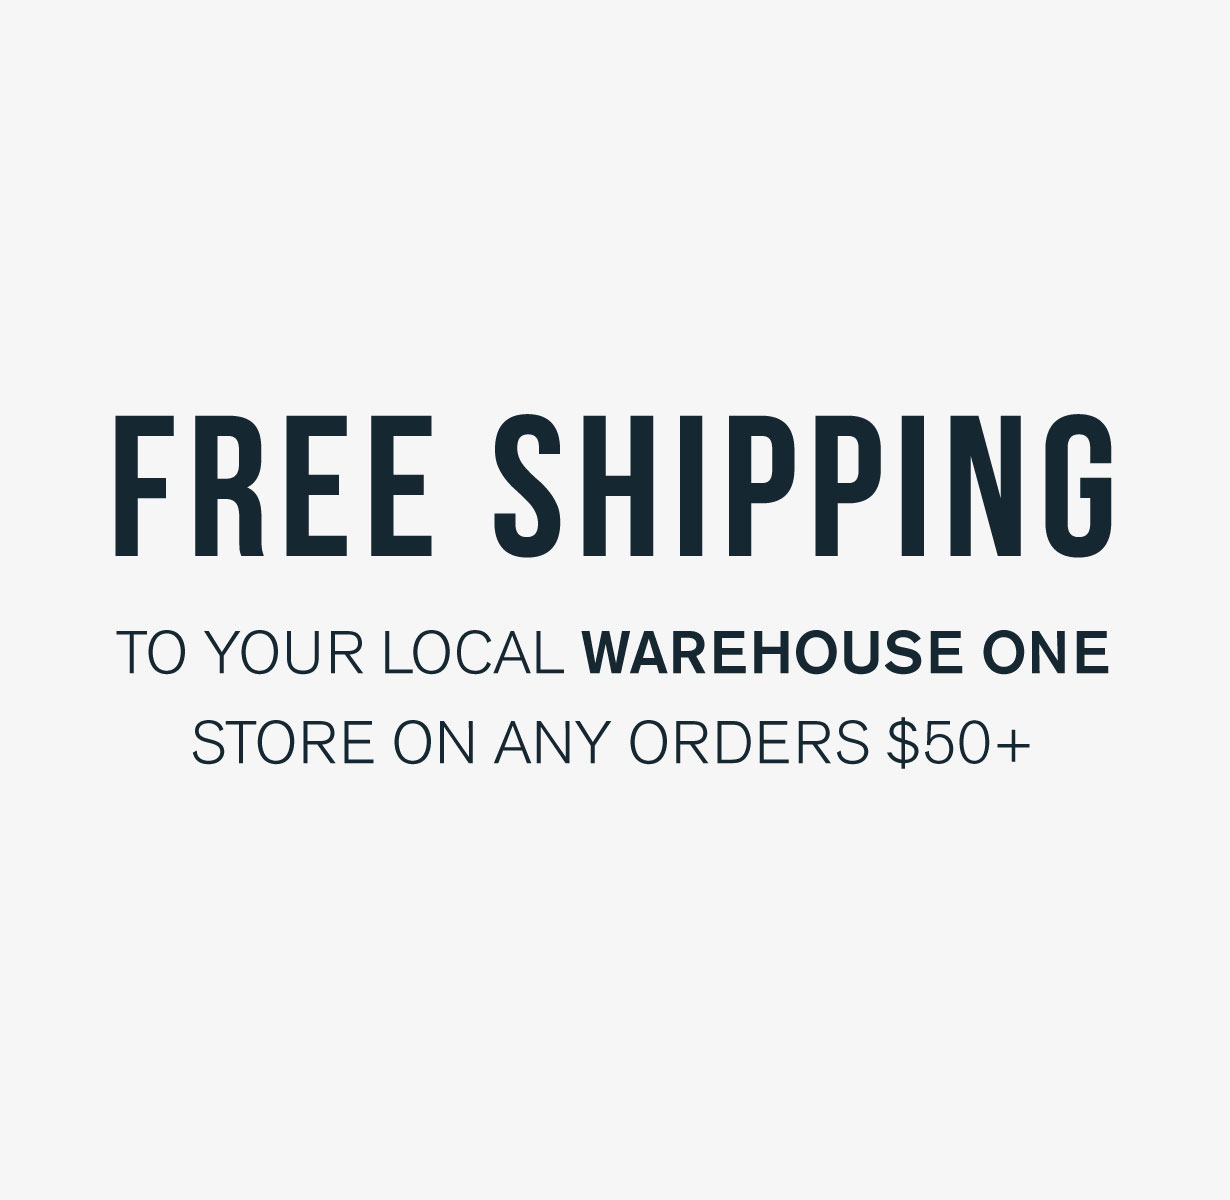 Free shipping to your local Warehouse One store on any order $50+